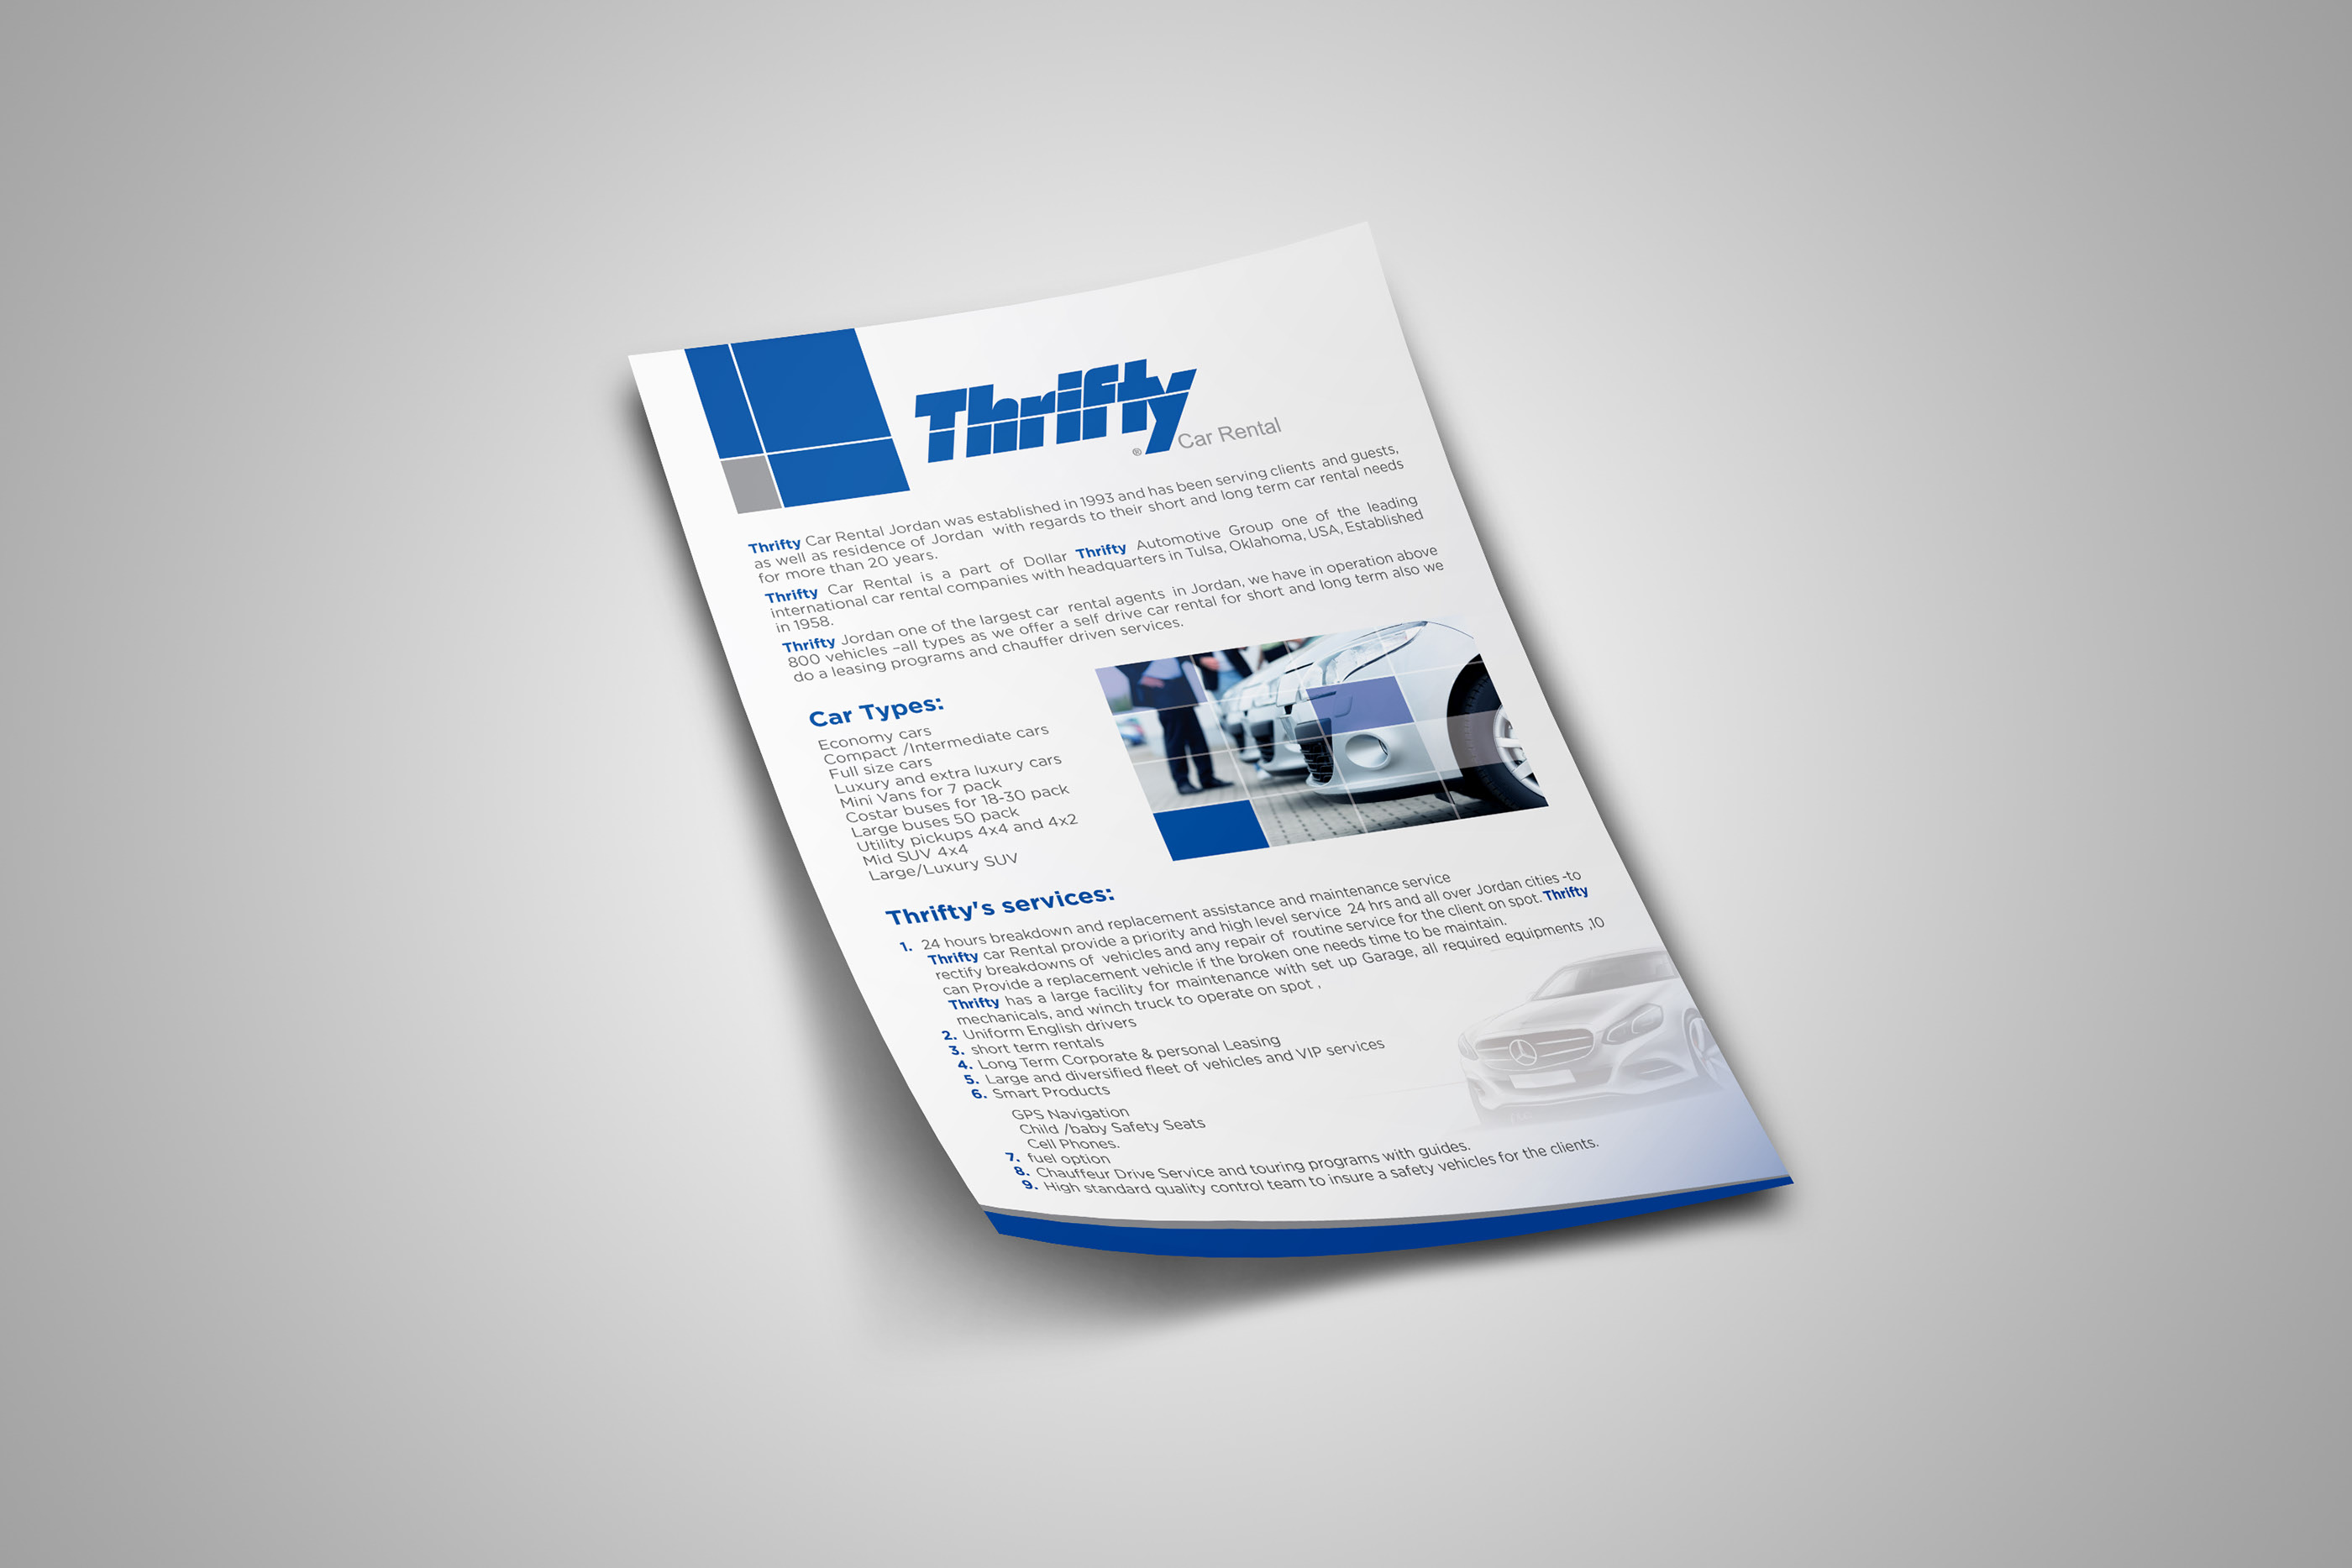 THRIFTY EXTRA WINDOWS 8.1 DRIVERS DOWNLOAD